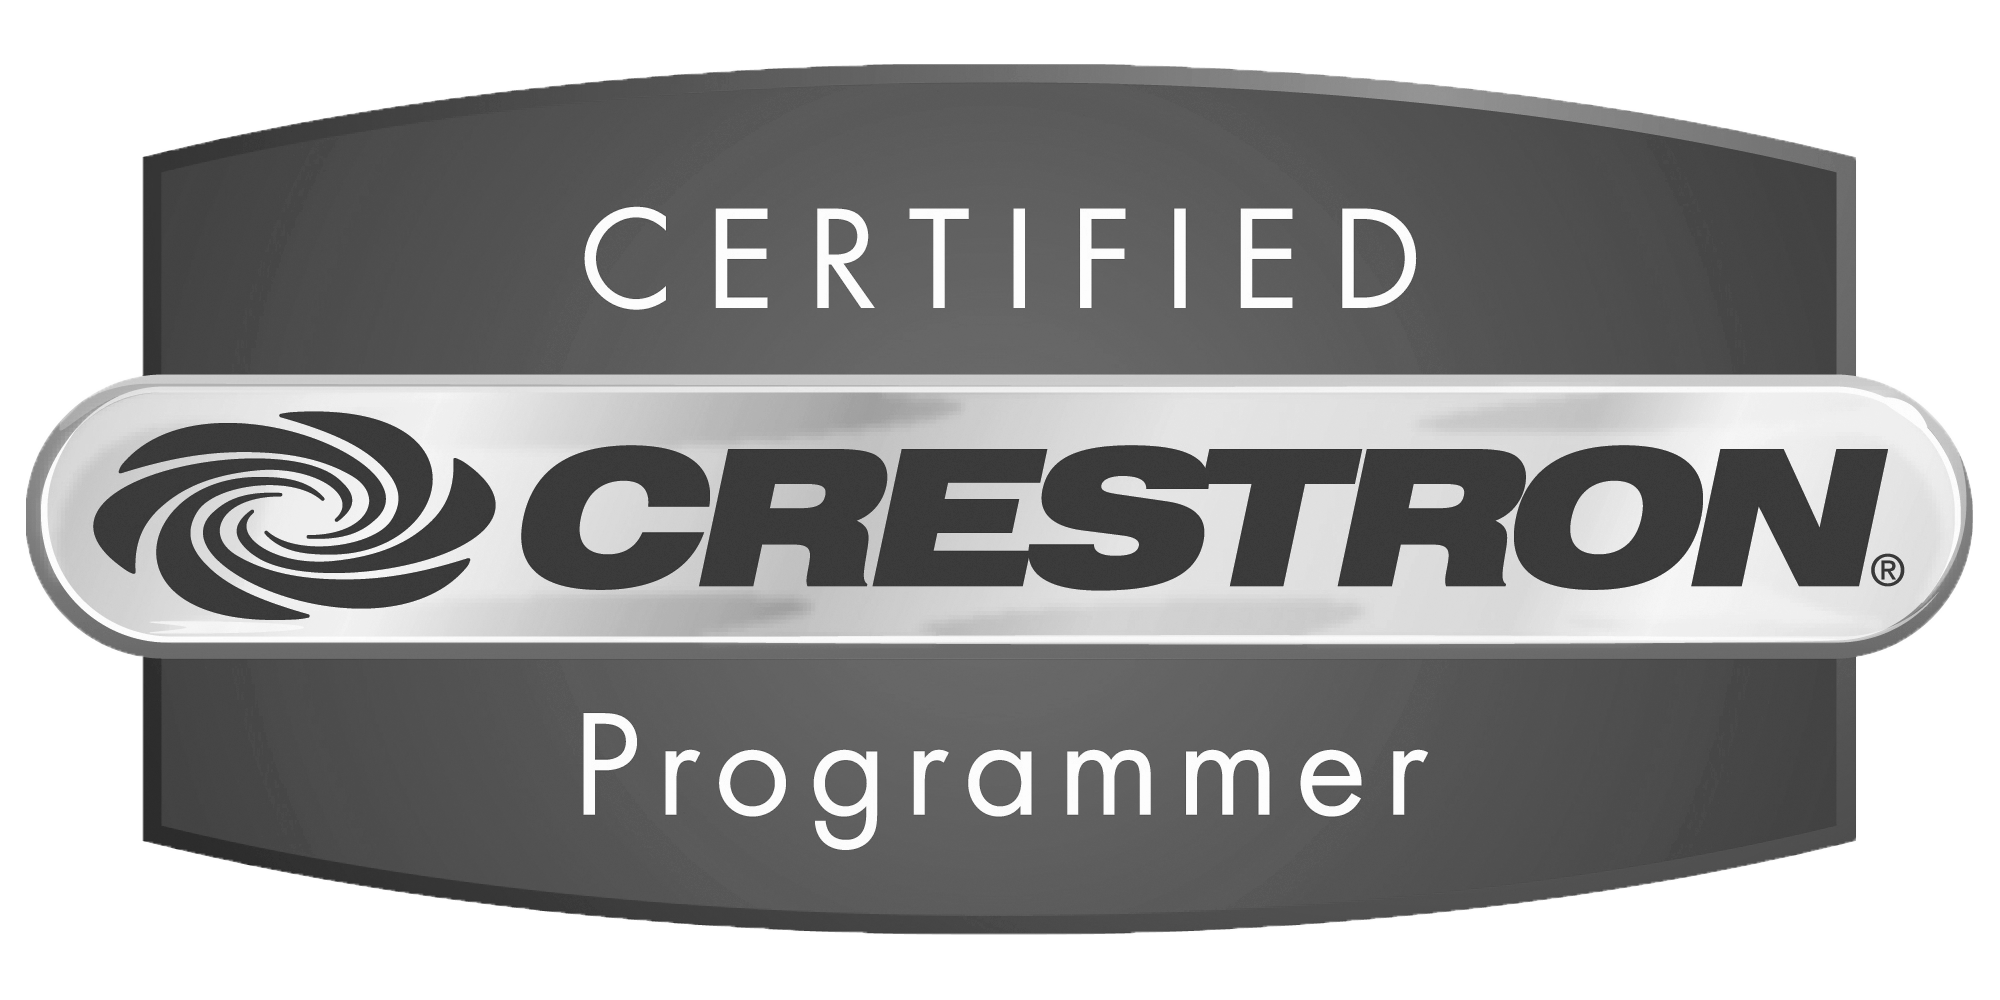 Technology Partners, Vendors & Products - Crestron Certified Programmer